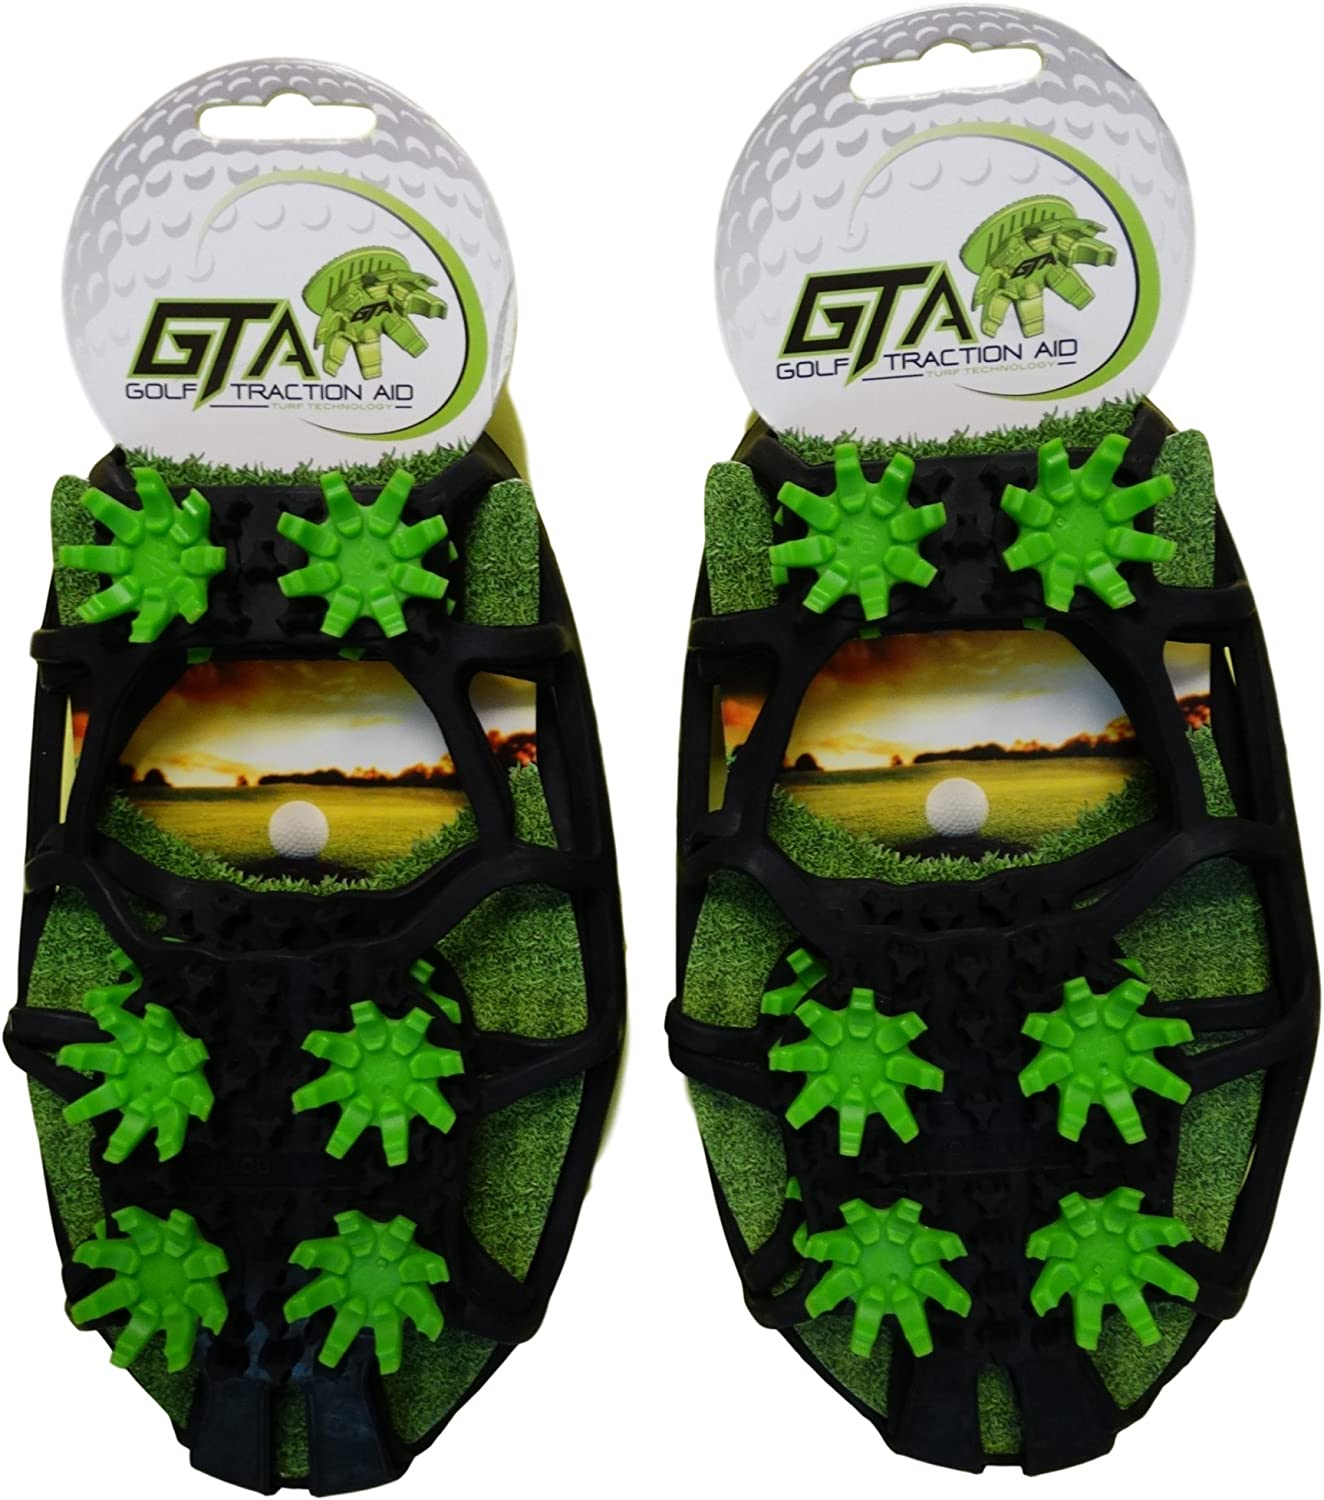 Super Special SALE held Due North Golf Traction Aid - Removable for Turf Industry No. 1 Cleats Spikes